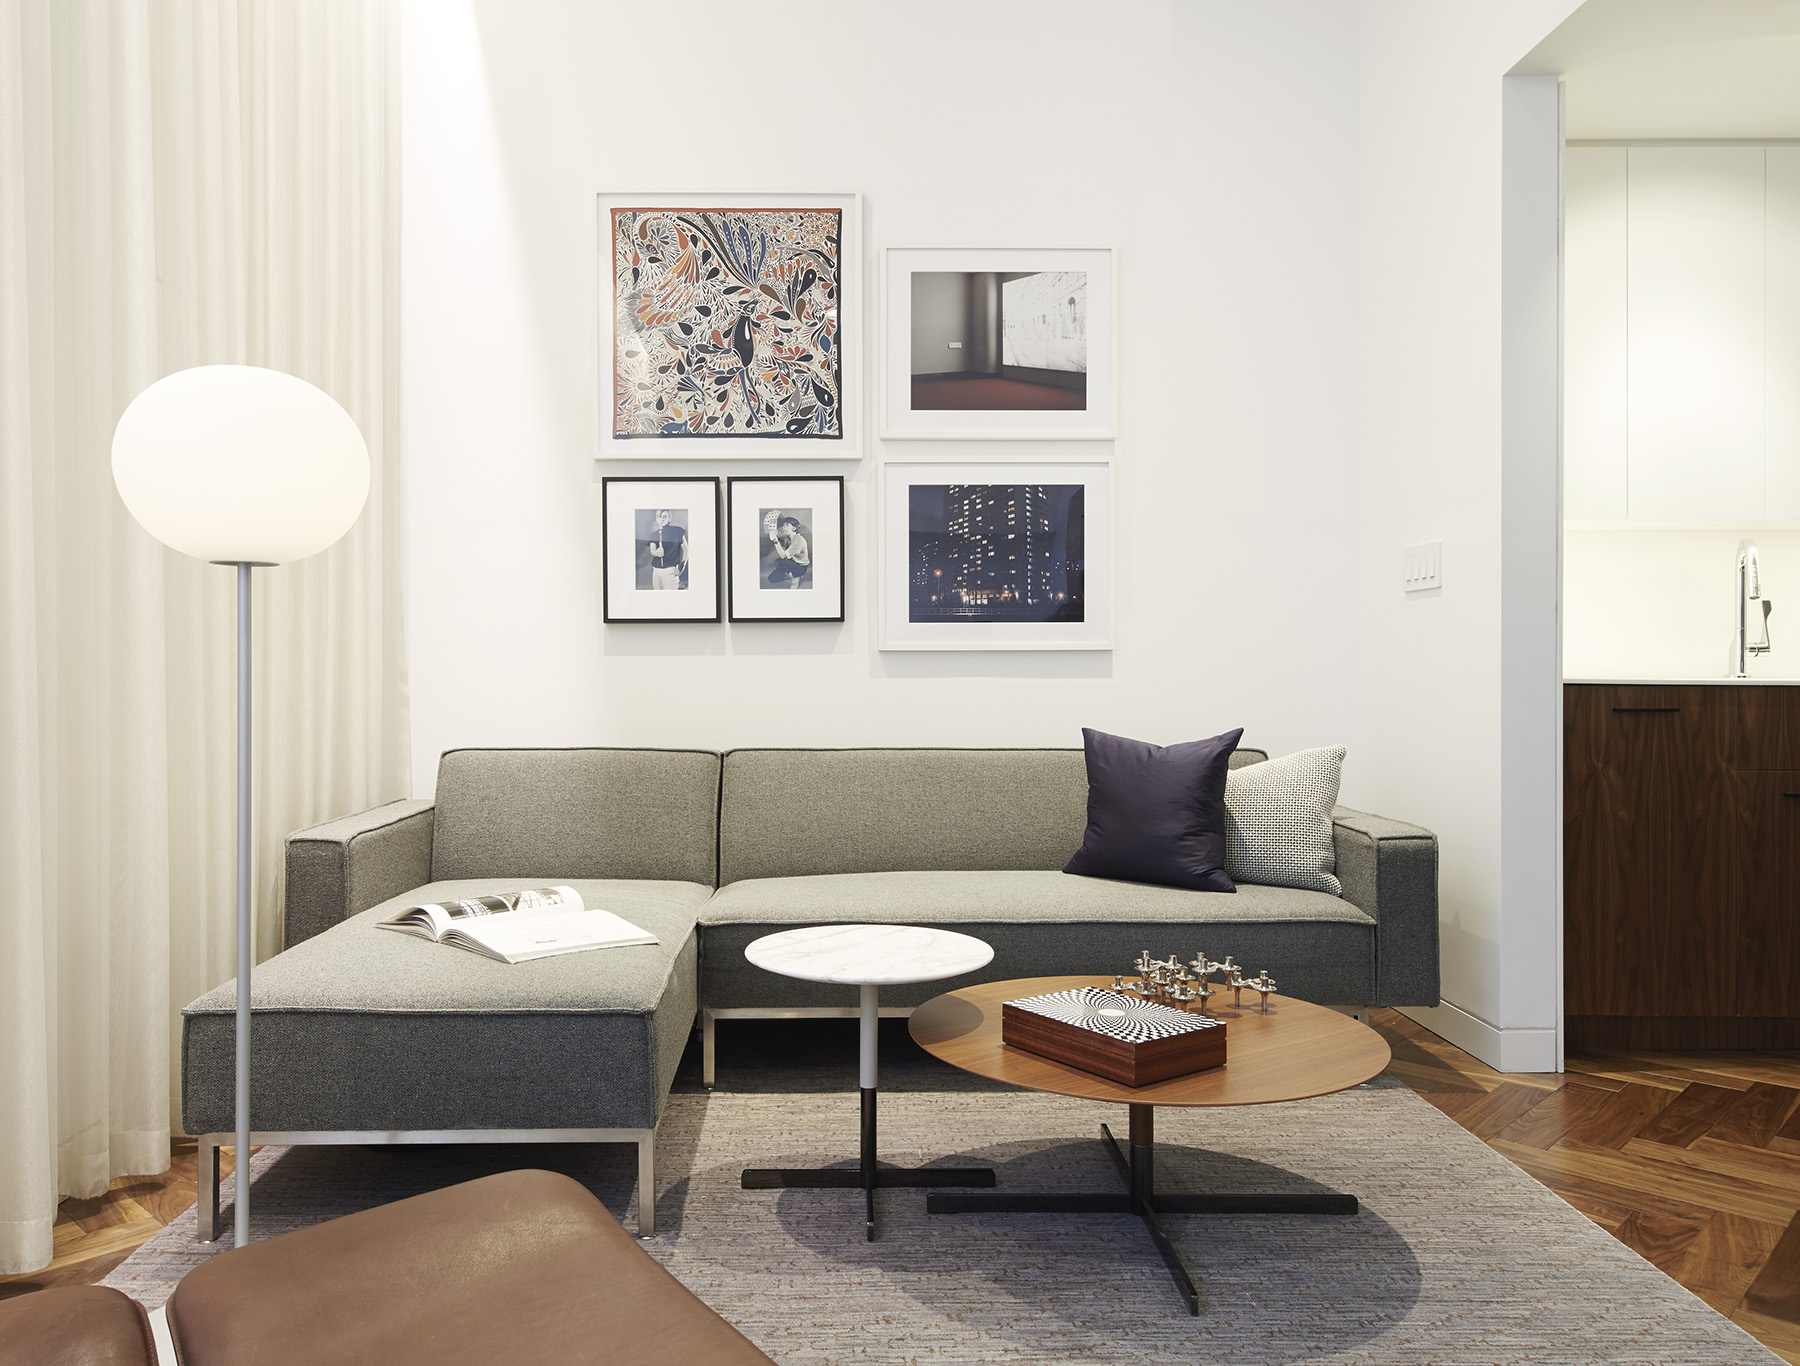 STADT Architecture, Gramercy Apartment, Cappellini, ABC Home, Walnut Floors, Cindy Sherman, Hermes, Fornasetti, STADT, Bob Tables, nyc architects, ny apartment renovation